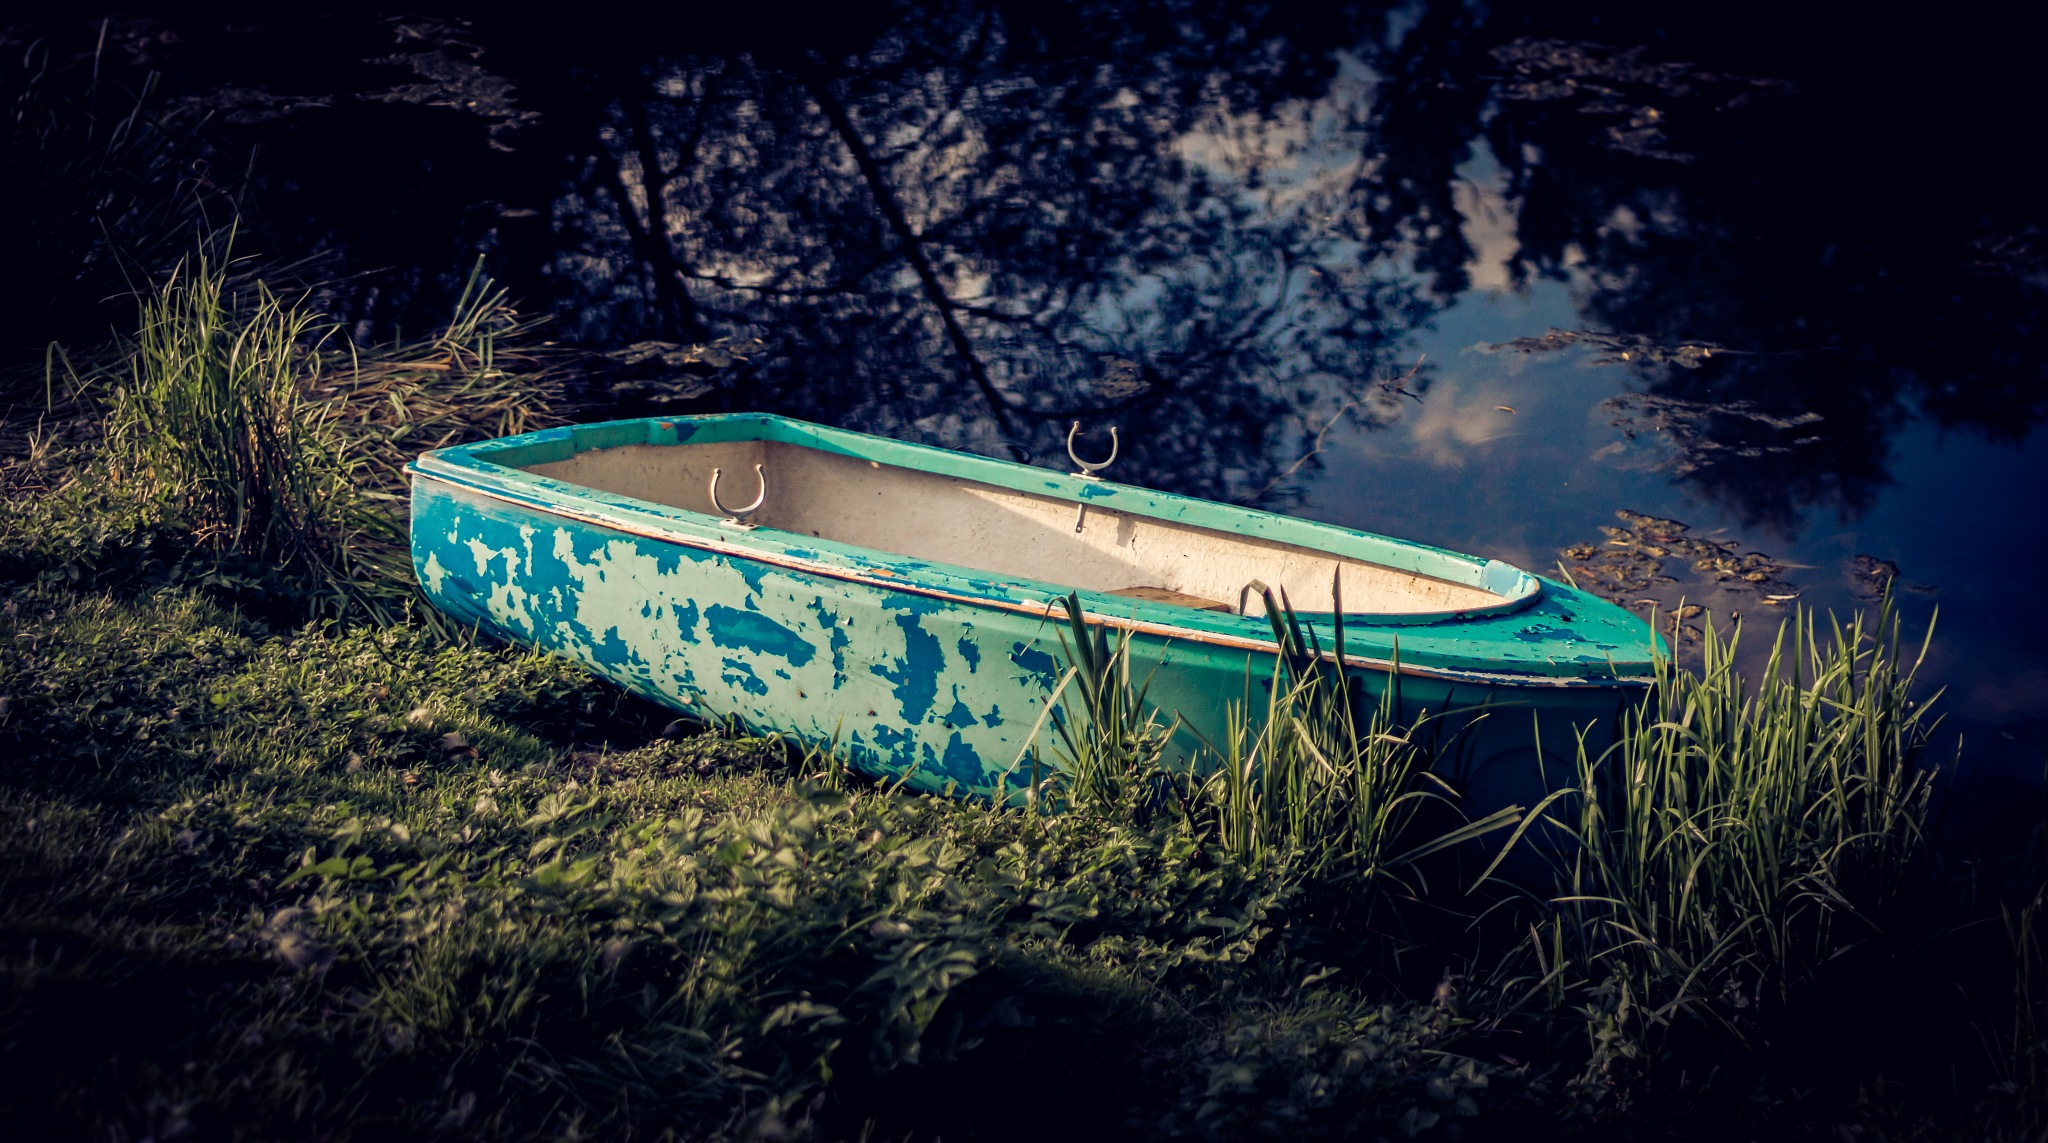 Blue Boat by MarkCon